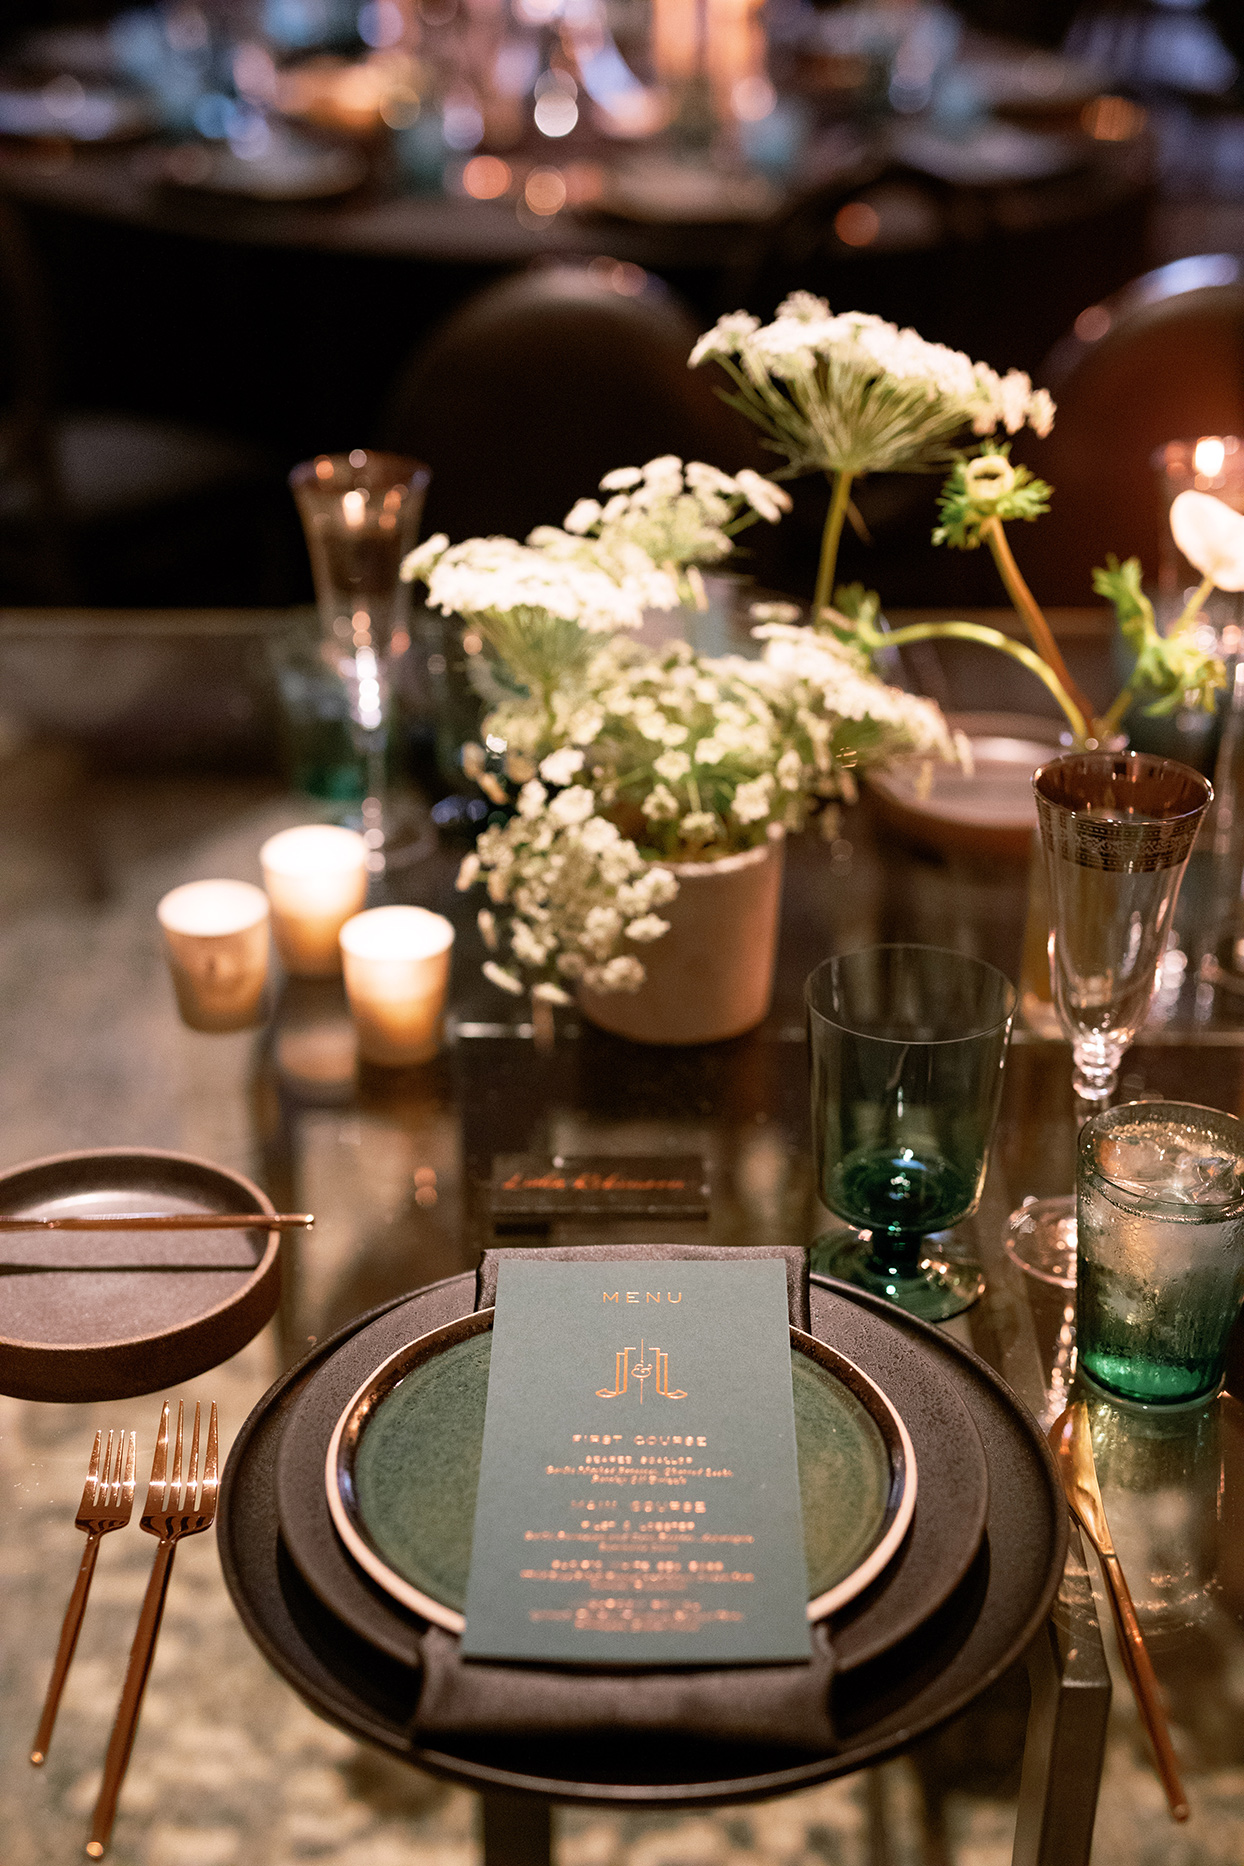 jason justin wedding reception dark tones place setting